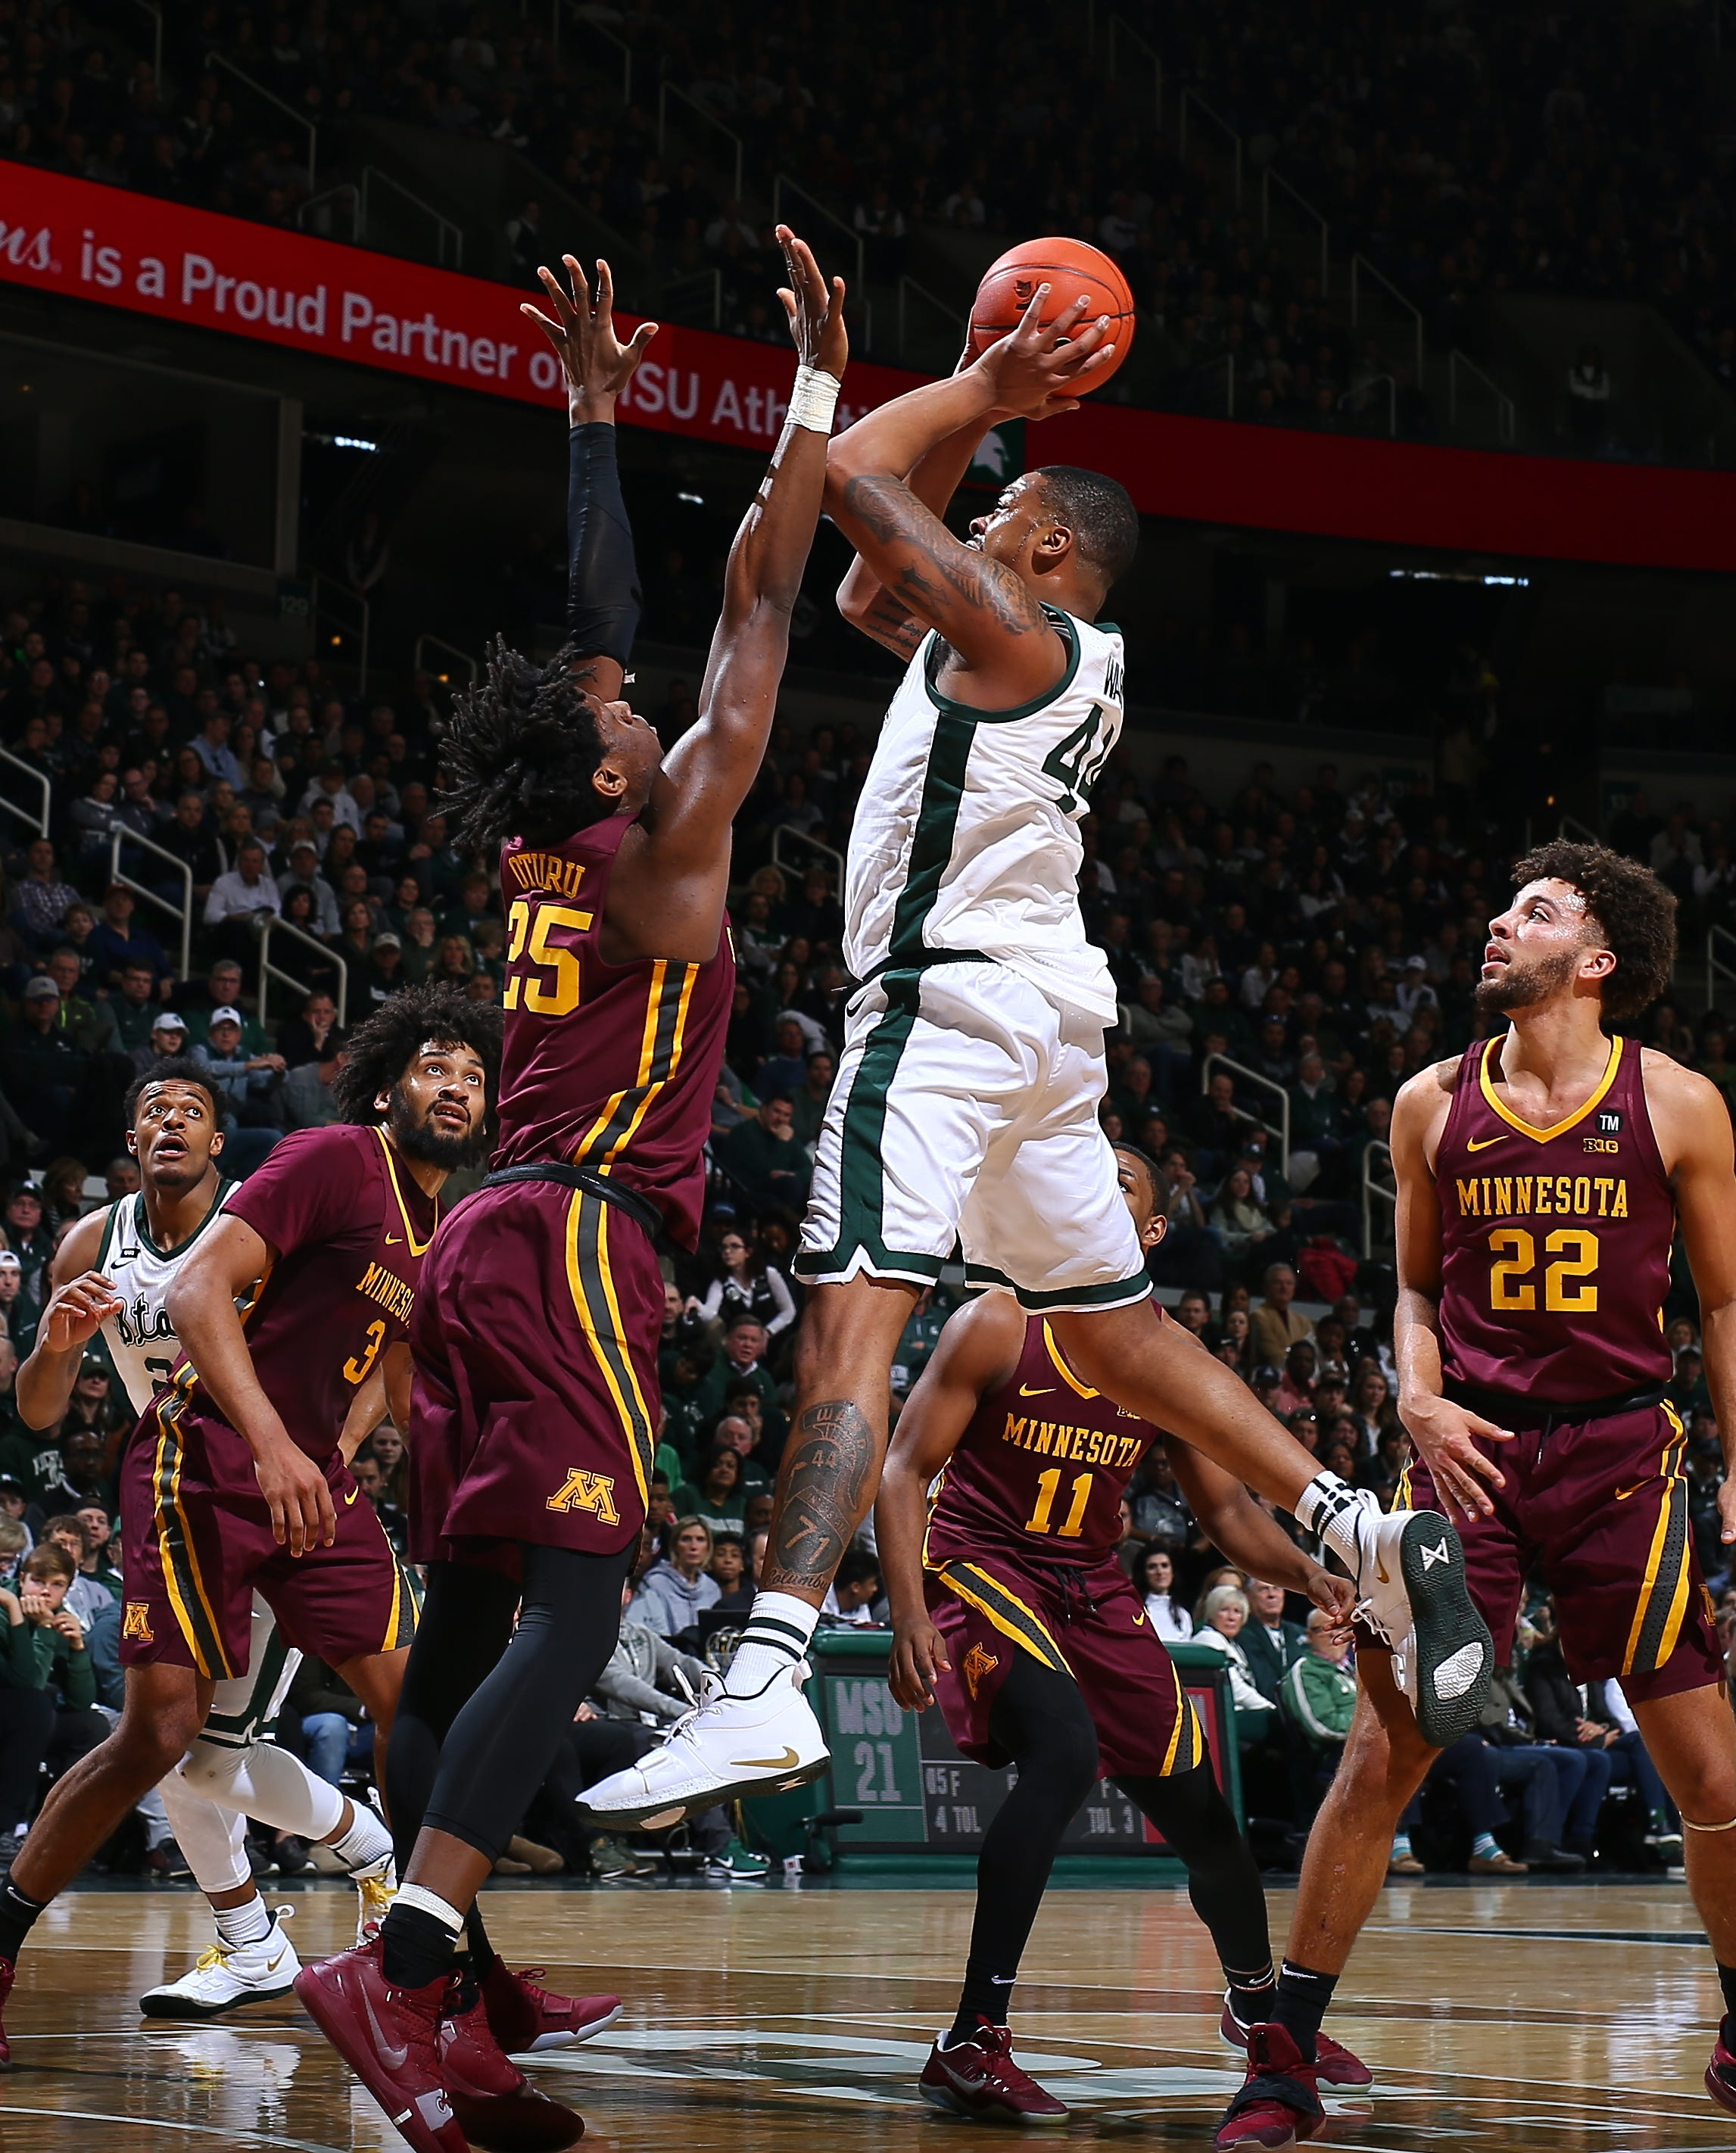 Nick Ward of Michigan State scores the ball over Minnesota's Daniel Oturu's first half at the Breslin Center on Saturday, February 9, 2019, in East Lansing.